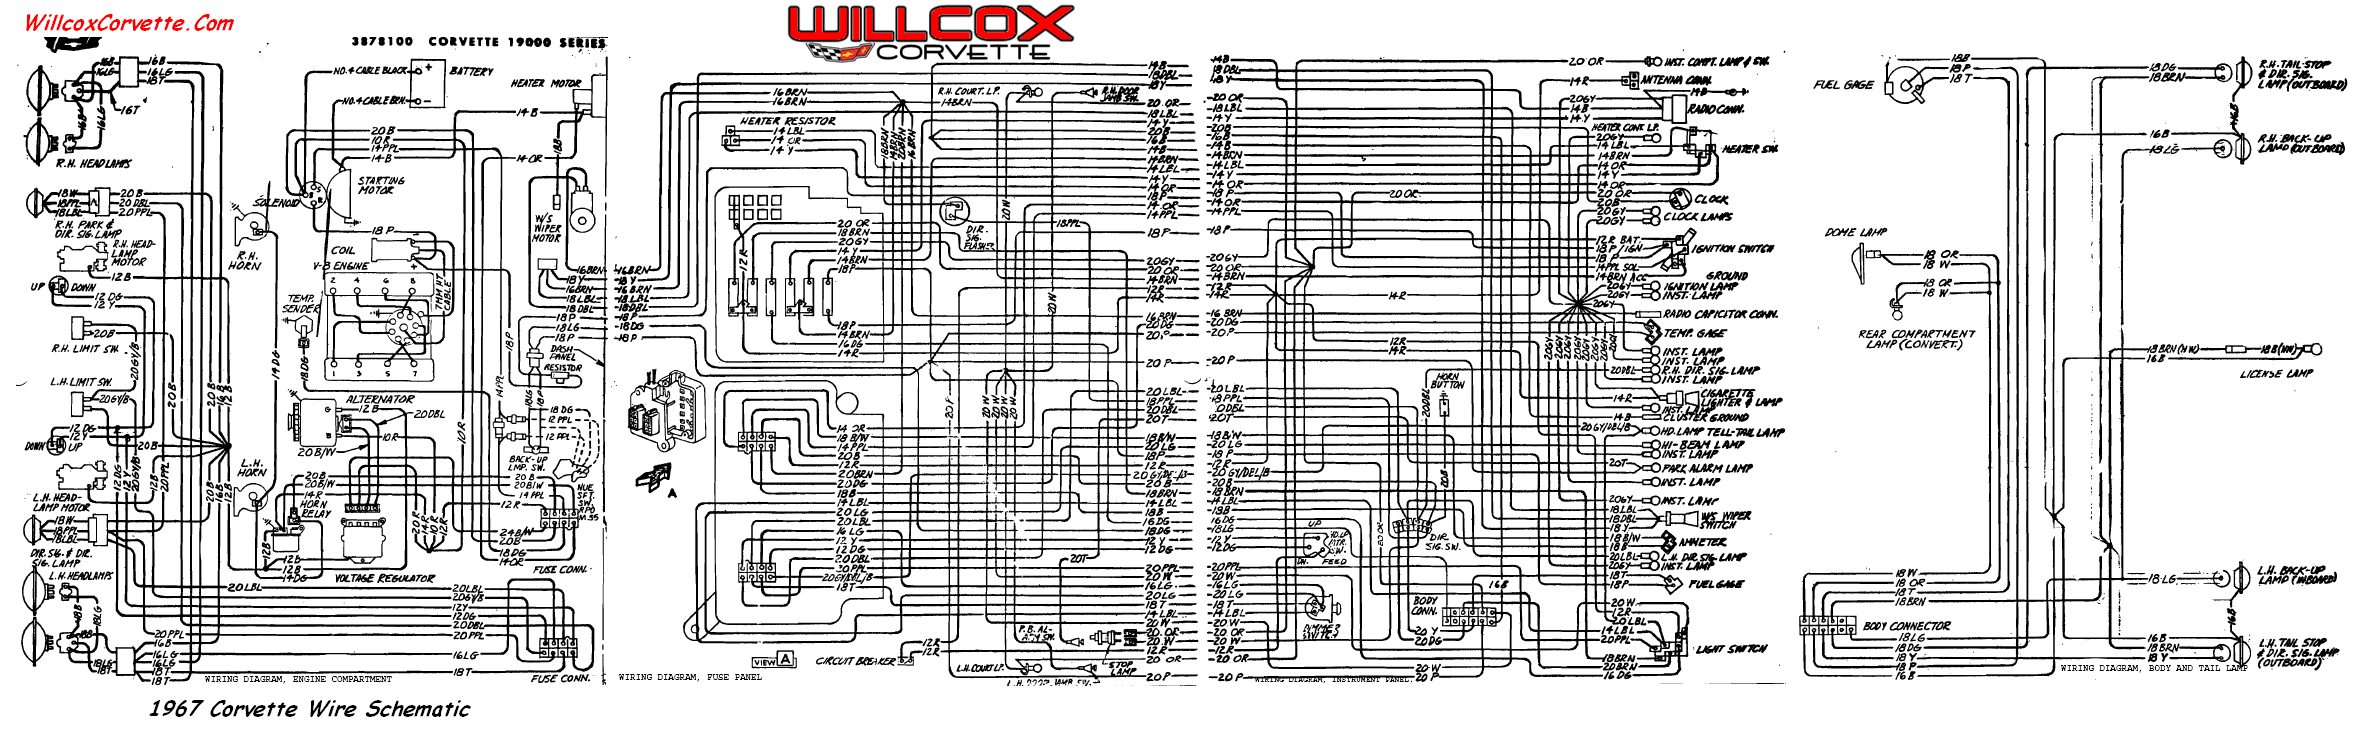 67 wire schematic for tracing wires 1969 corvette wiring diagram 80 corvette wiring diagram \u2022 free 1969 corvette wiring harness at honlapkeszites.co